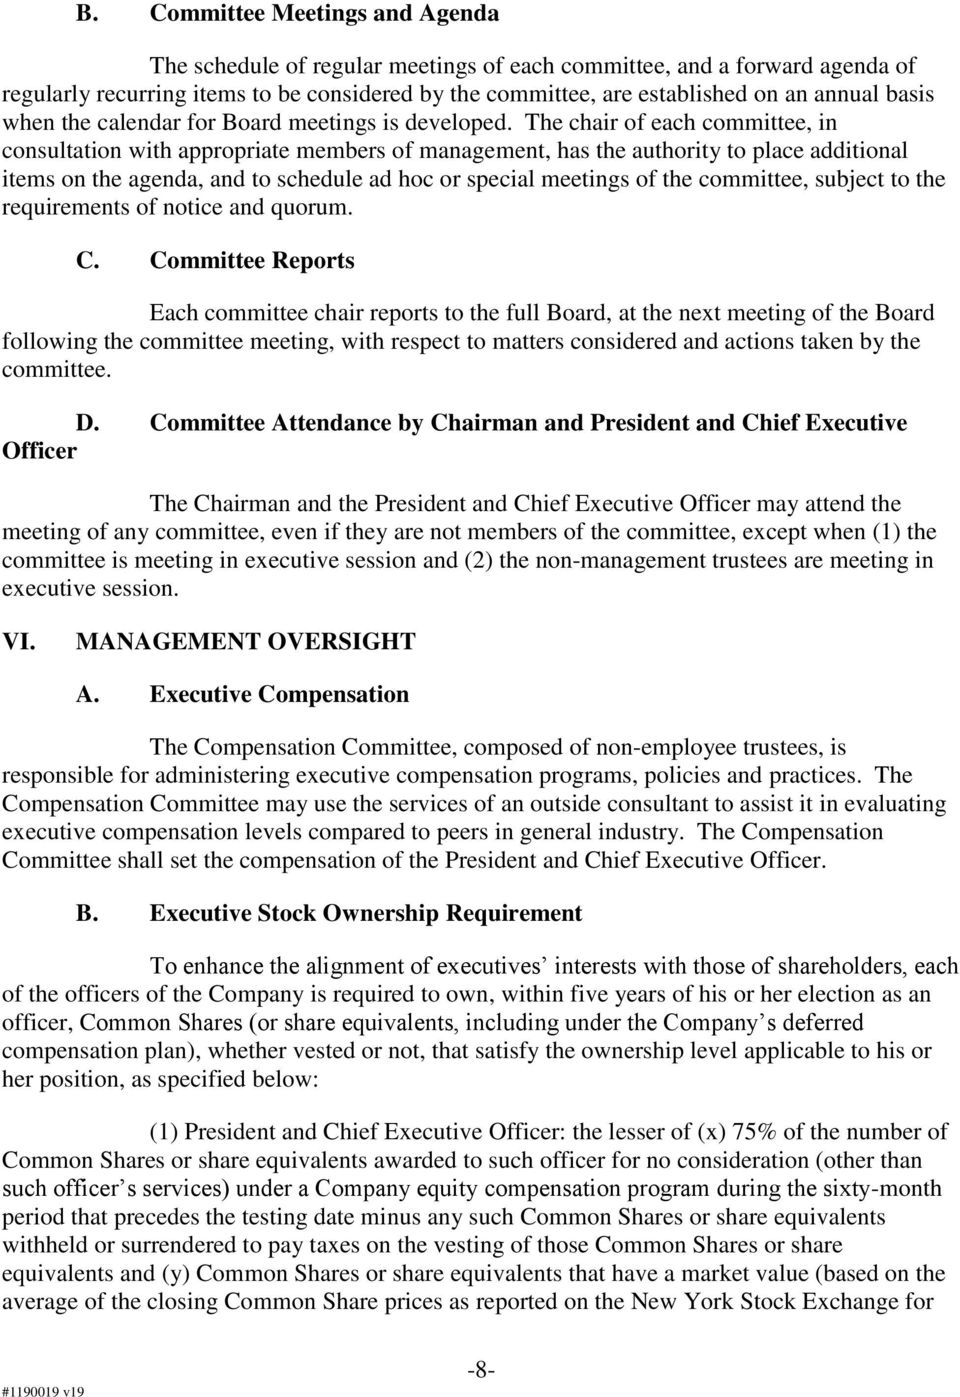 The chair of each committee, in consultation with appropriate members of management, has the authority to place additional items on the agenda, and to schedule ad hoc or special meetings of the